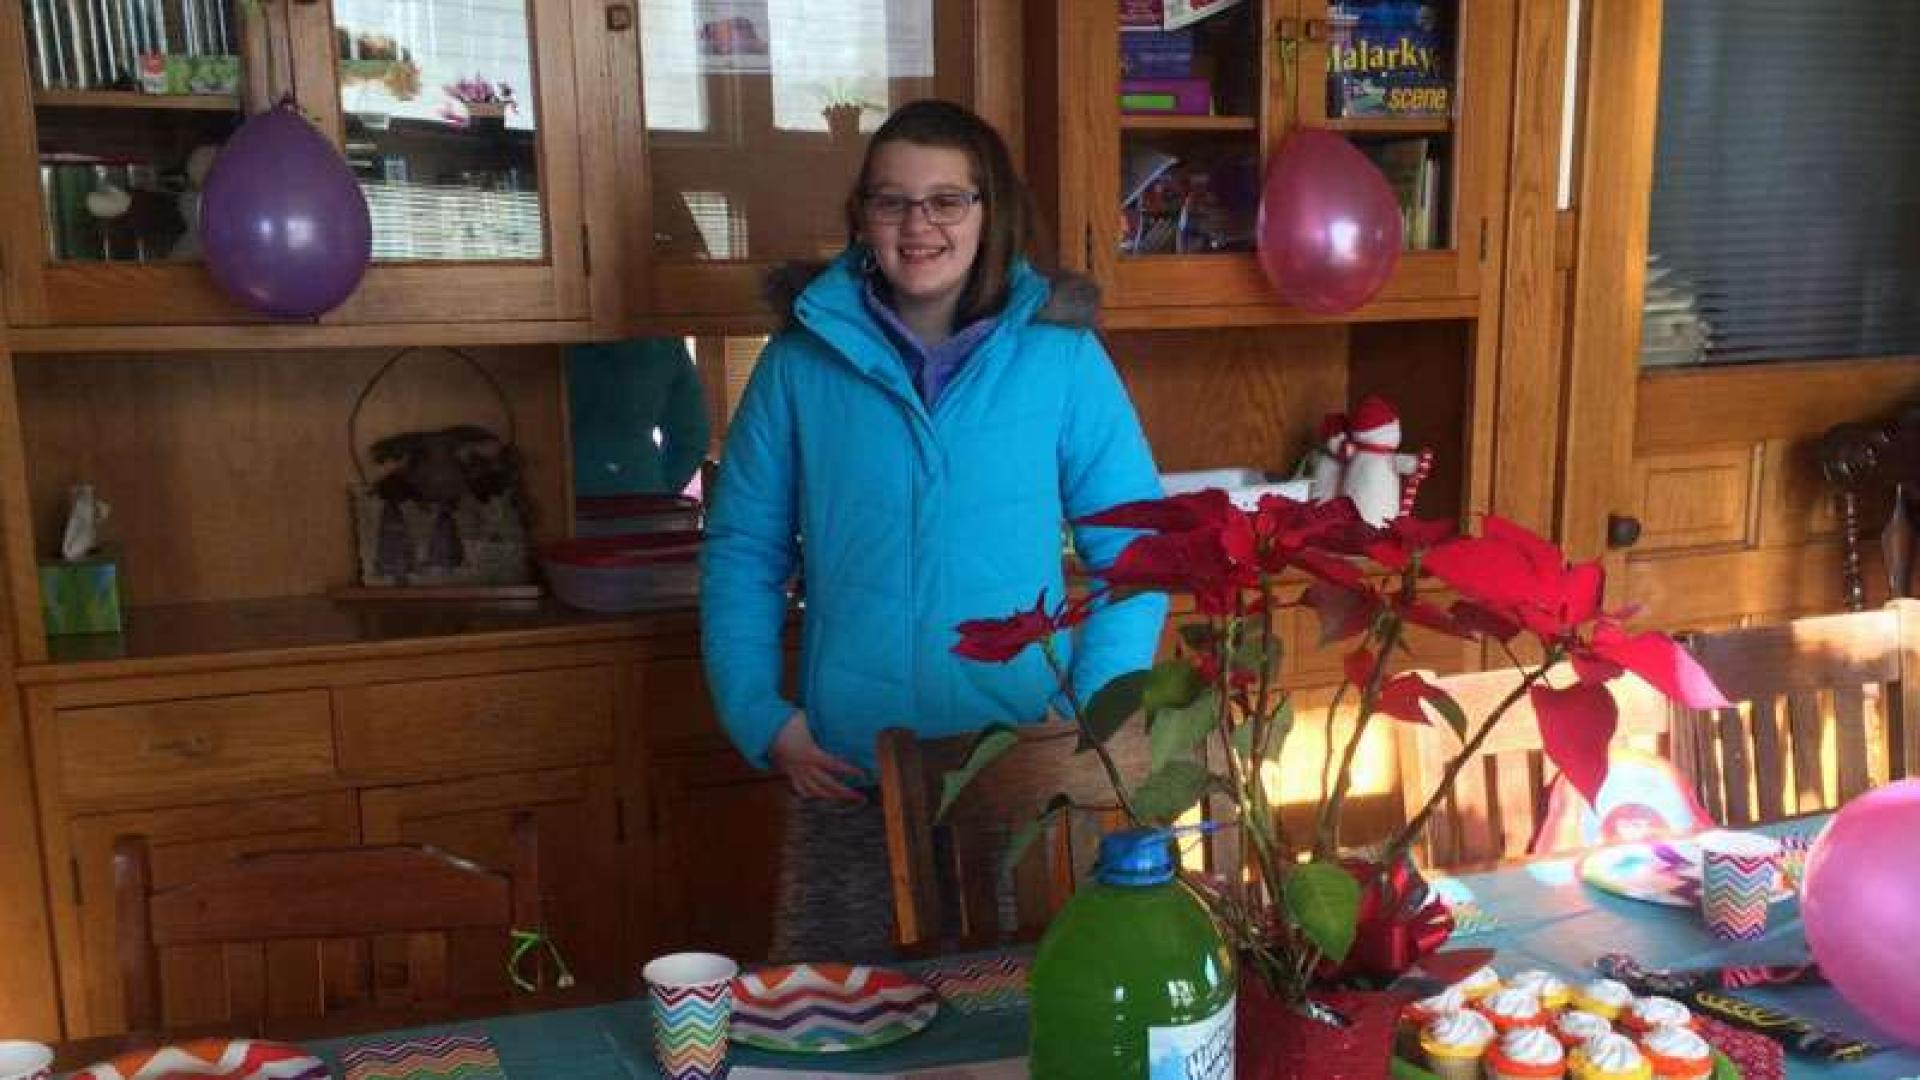 12 Year Old Throws Birthday Parties For Kids In Homeless Shelter